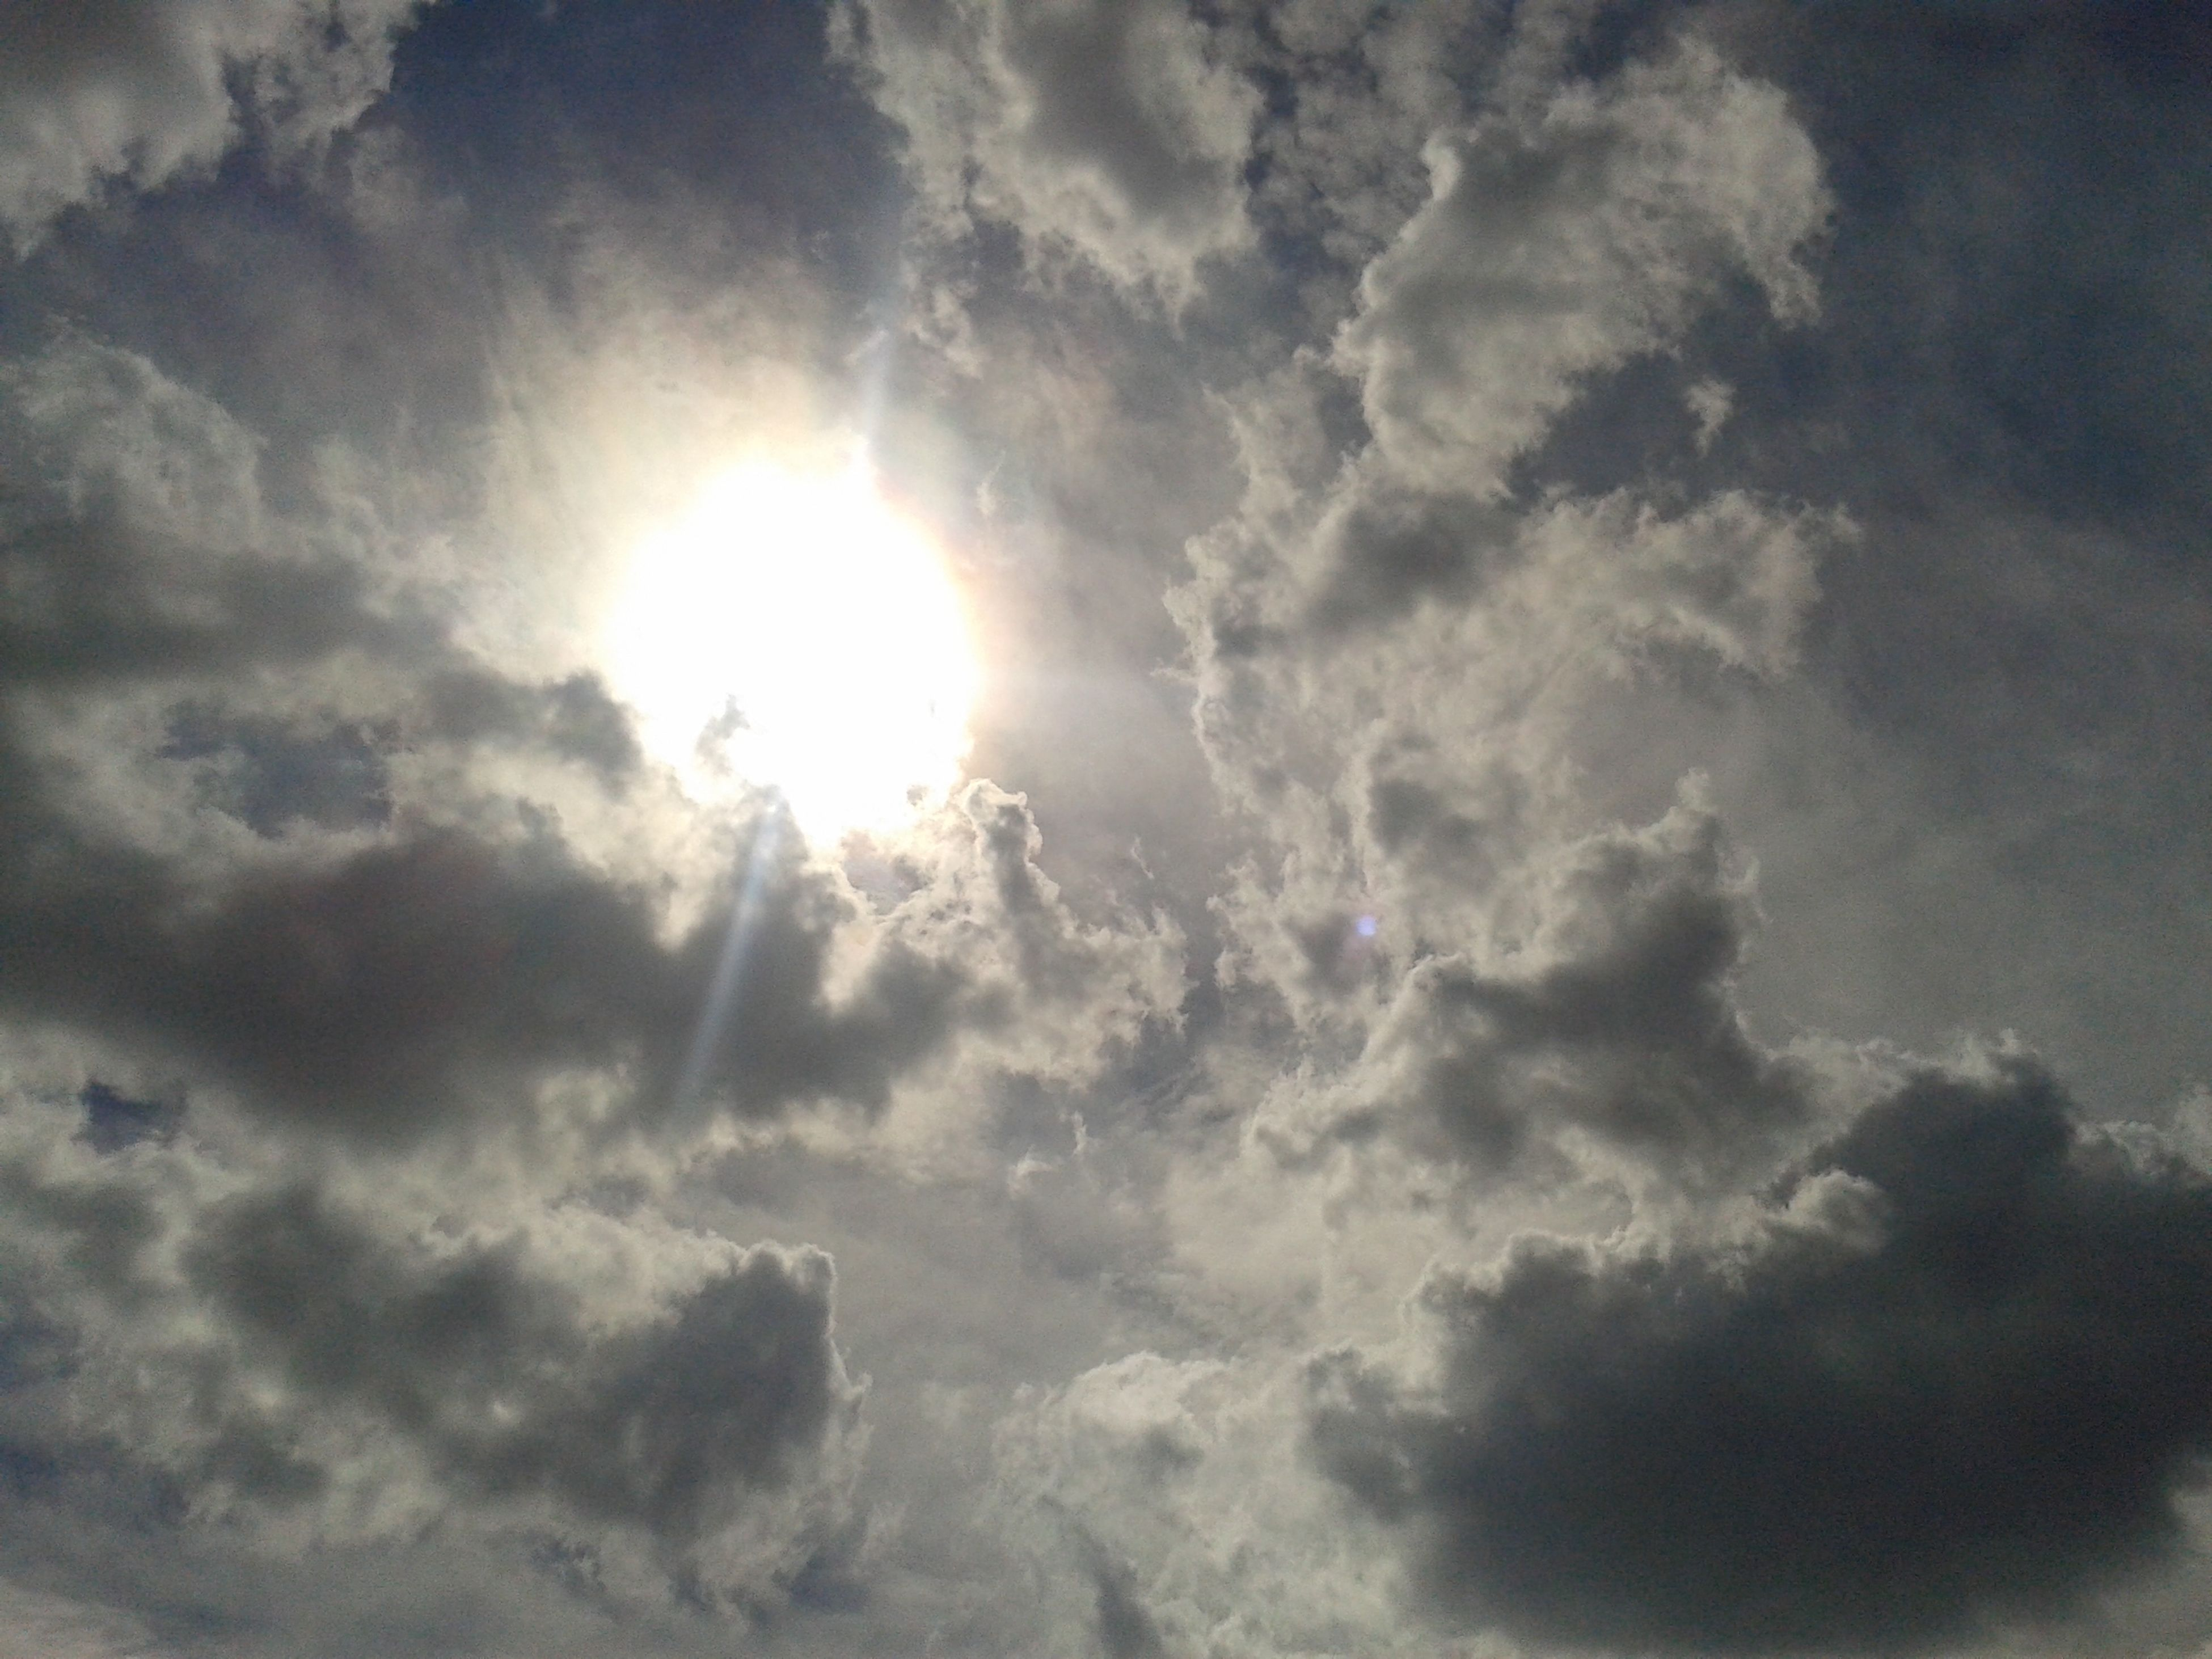 sky, cloud - sky, sun, cloudy, low angle view, sunbeam, beauty in nature, tranquility, weather, nature, scenics, tranquil scene, sunlight, cloud, cloudscape, sky only, lens flare, idyllic, outdoors, overcast